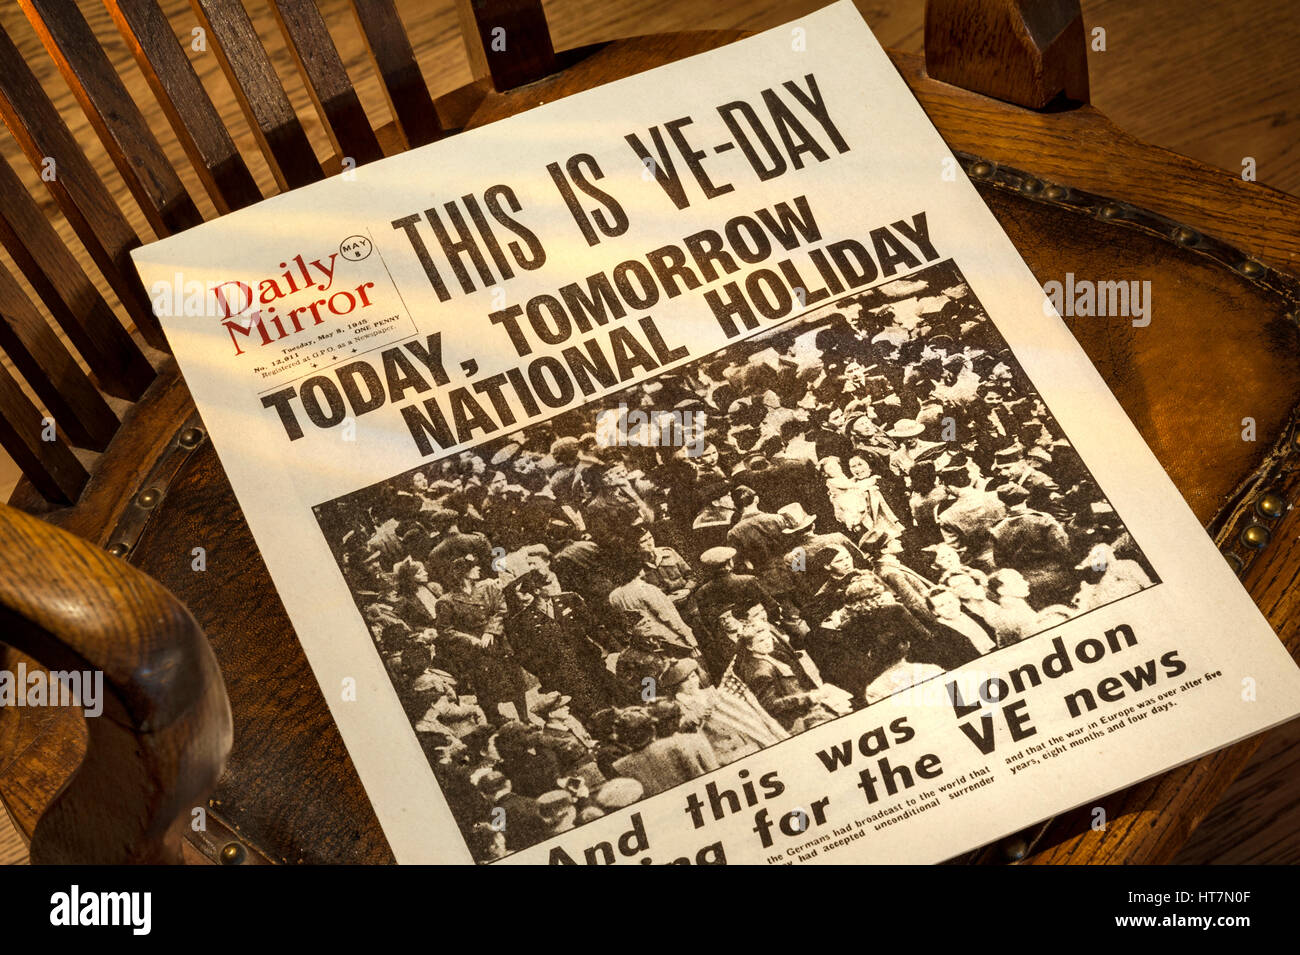 VE DAY HEADLINES Historic Daily Mirror newspaper headline 'This is VE Day' dated May 8th 1945 on 1940's - Stock Image